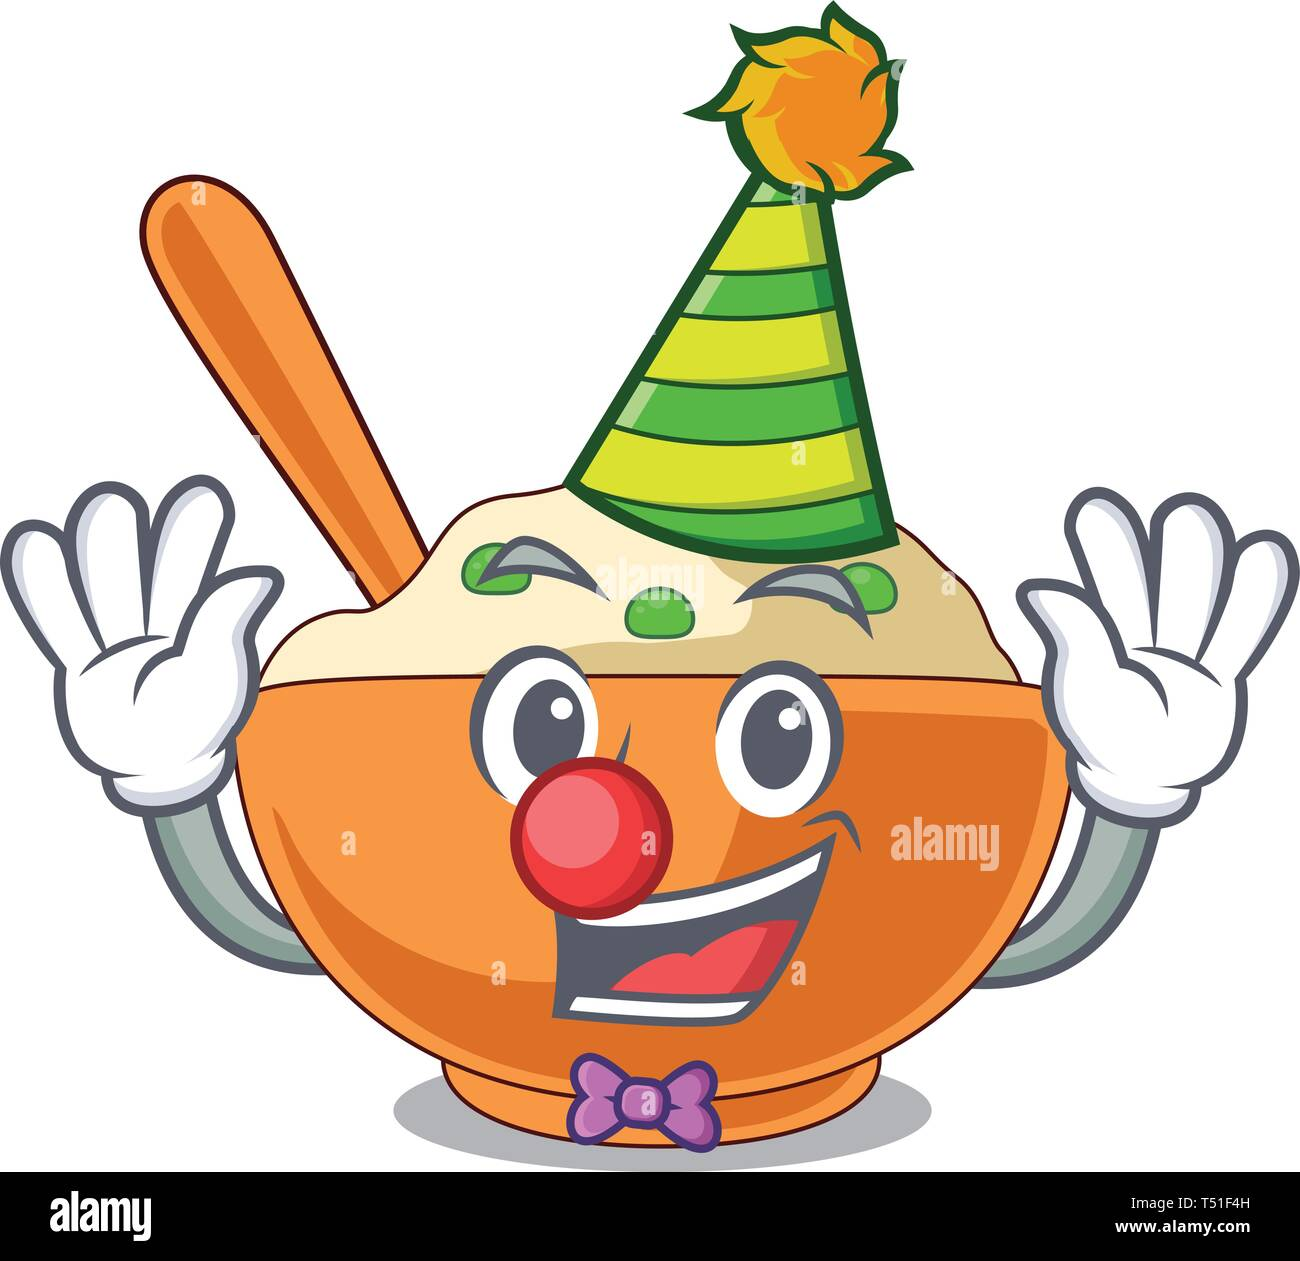 Clown mashed potato above in cartoon plate - Stock Image